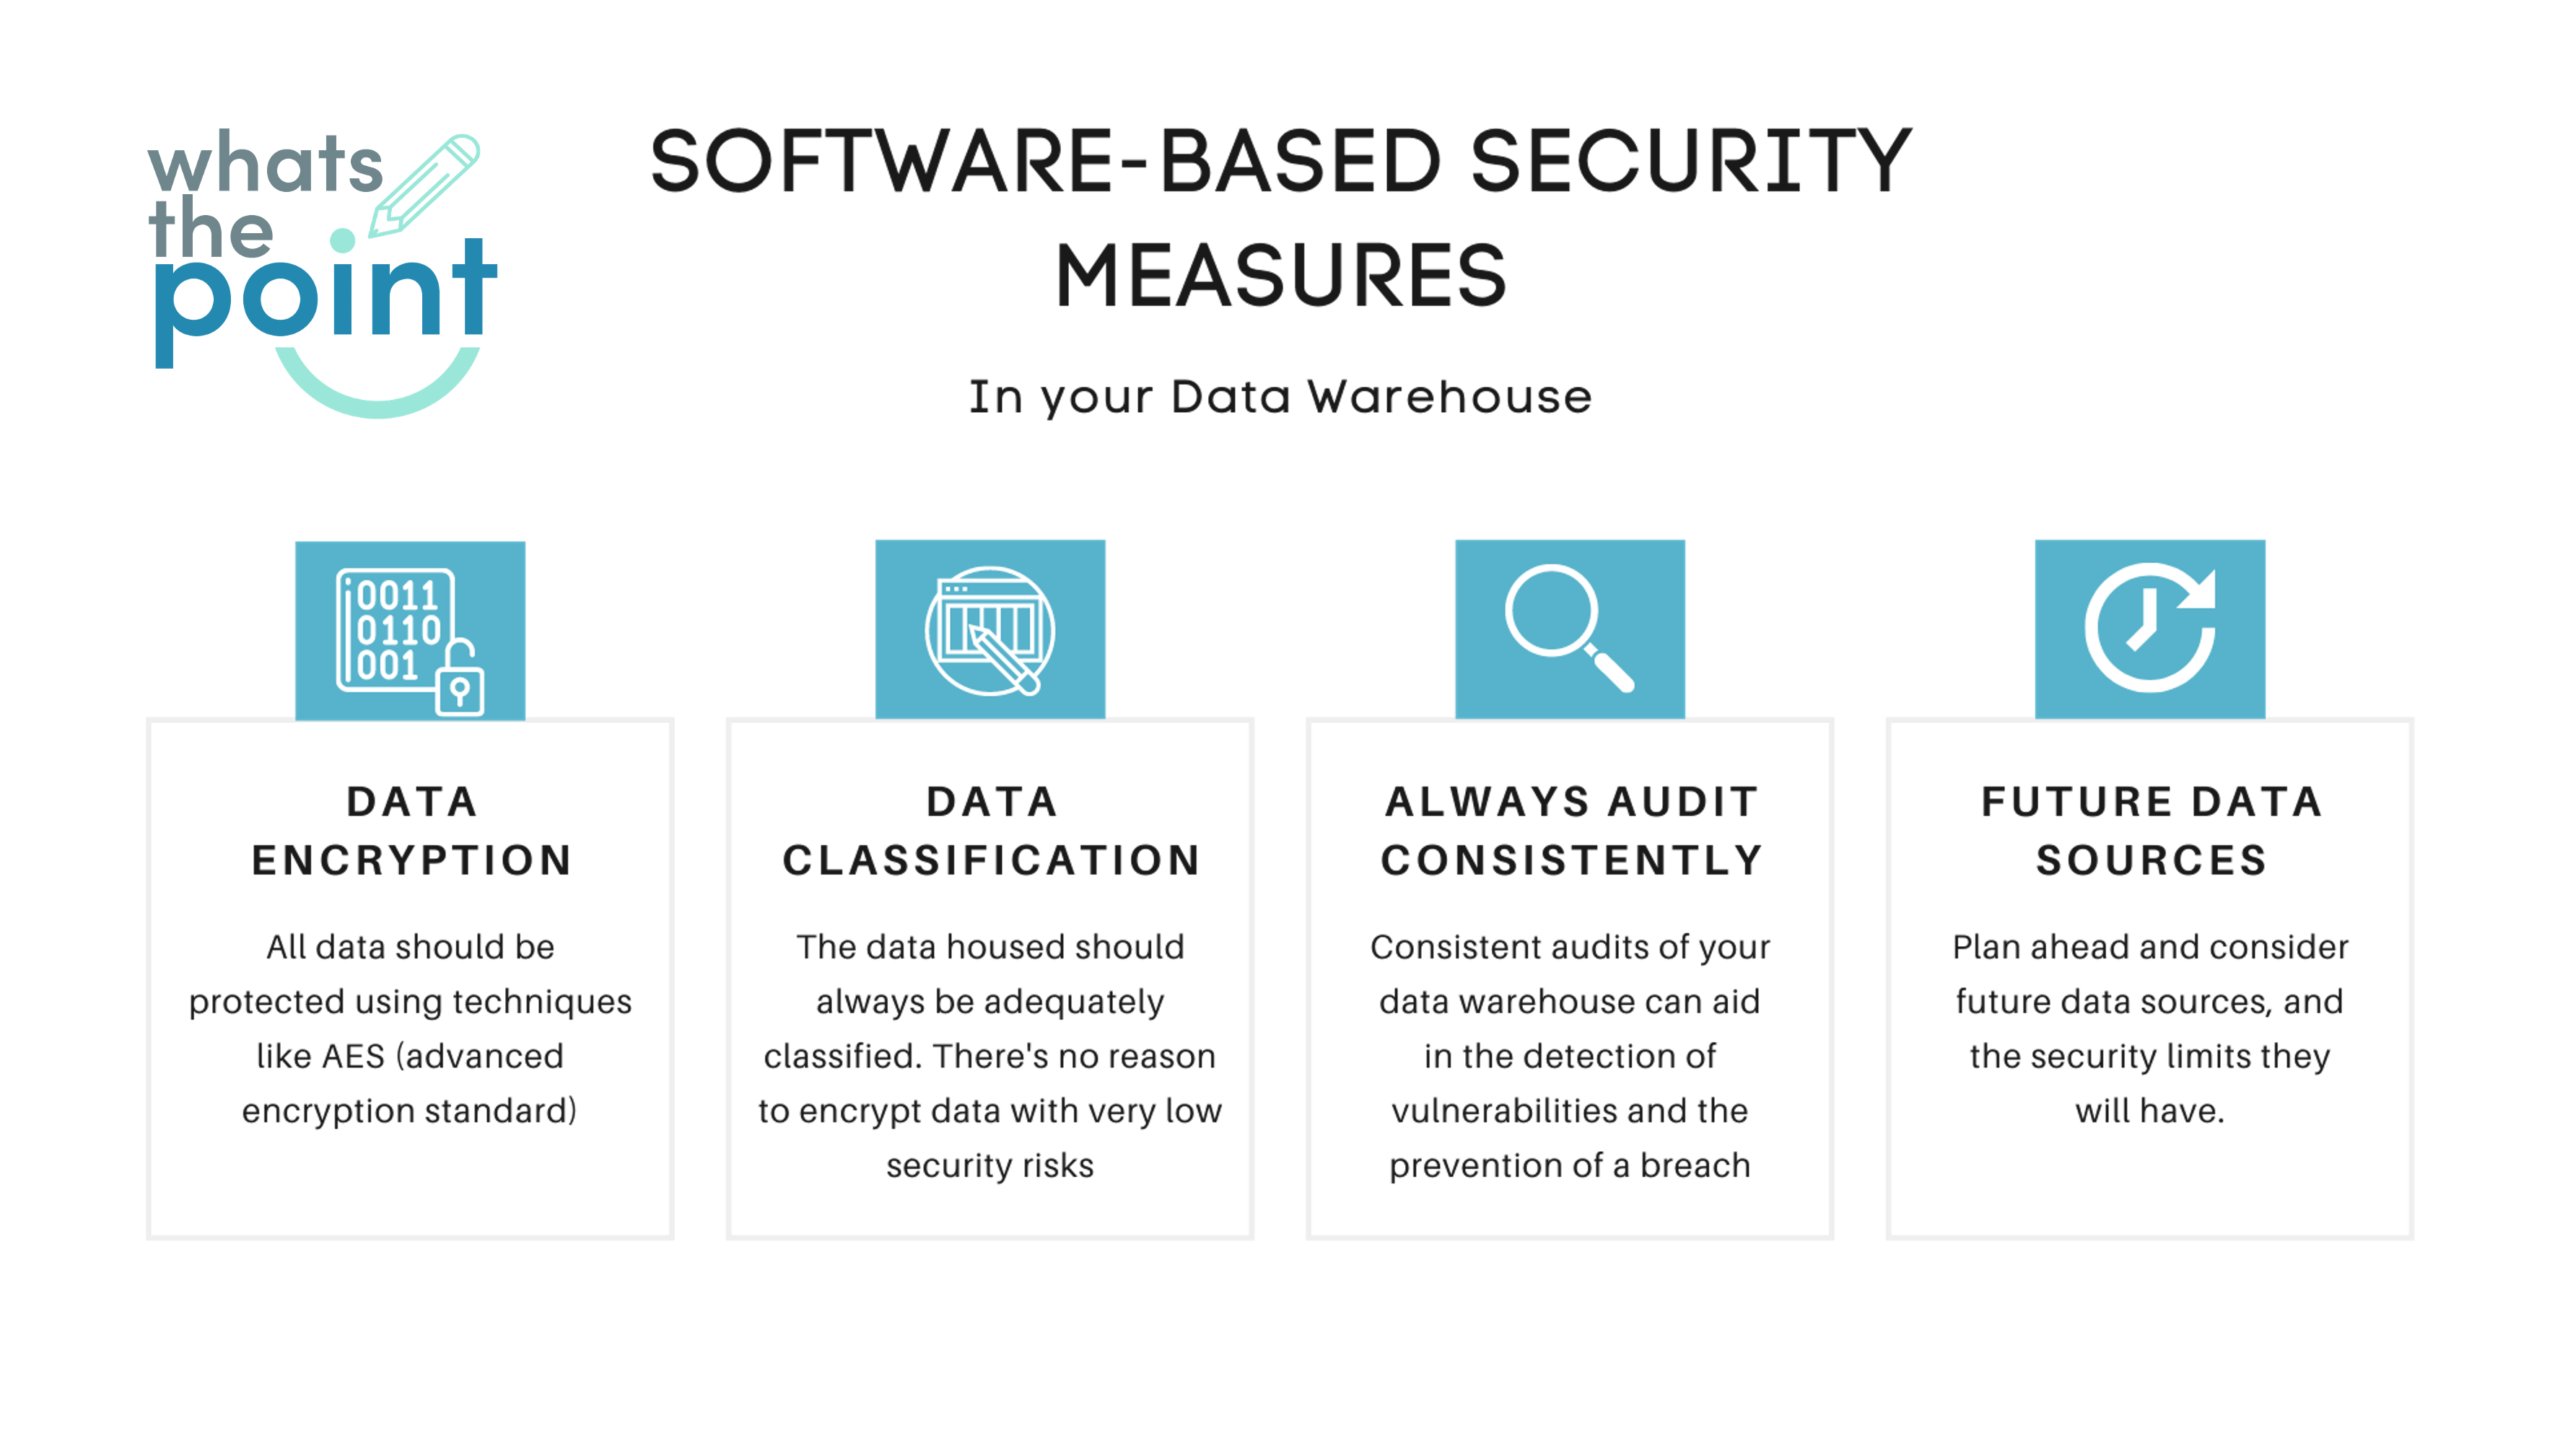 Diagram Of Software Based Security Measures